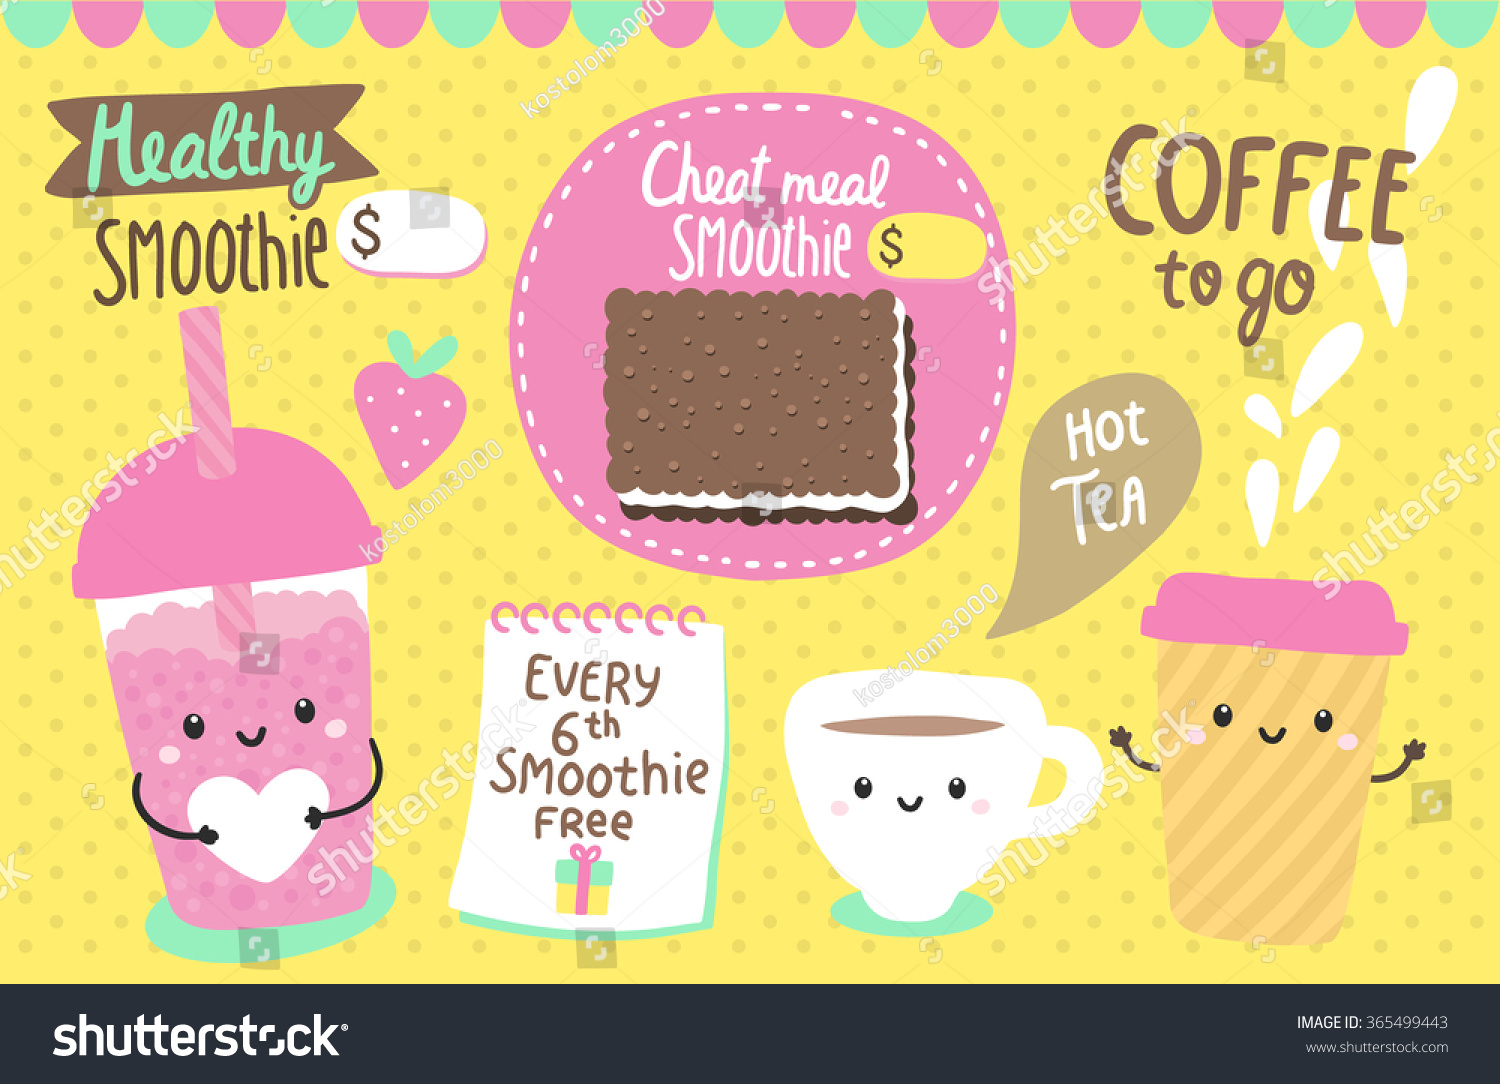 cute characters smoothie tea mug coffee stock vector  cute characters smoothie tea mug coffee cup adorable flyer design funny